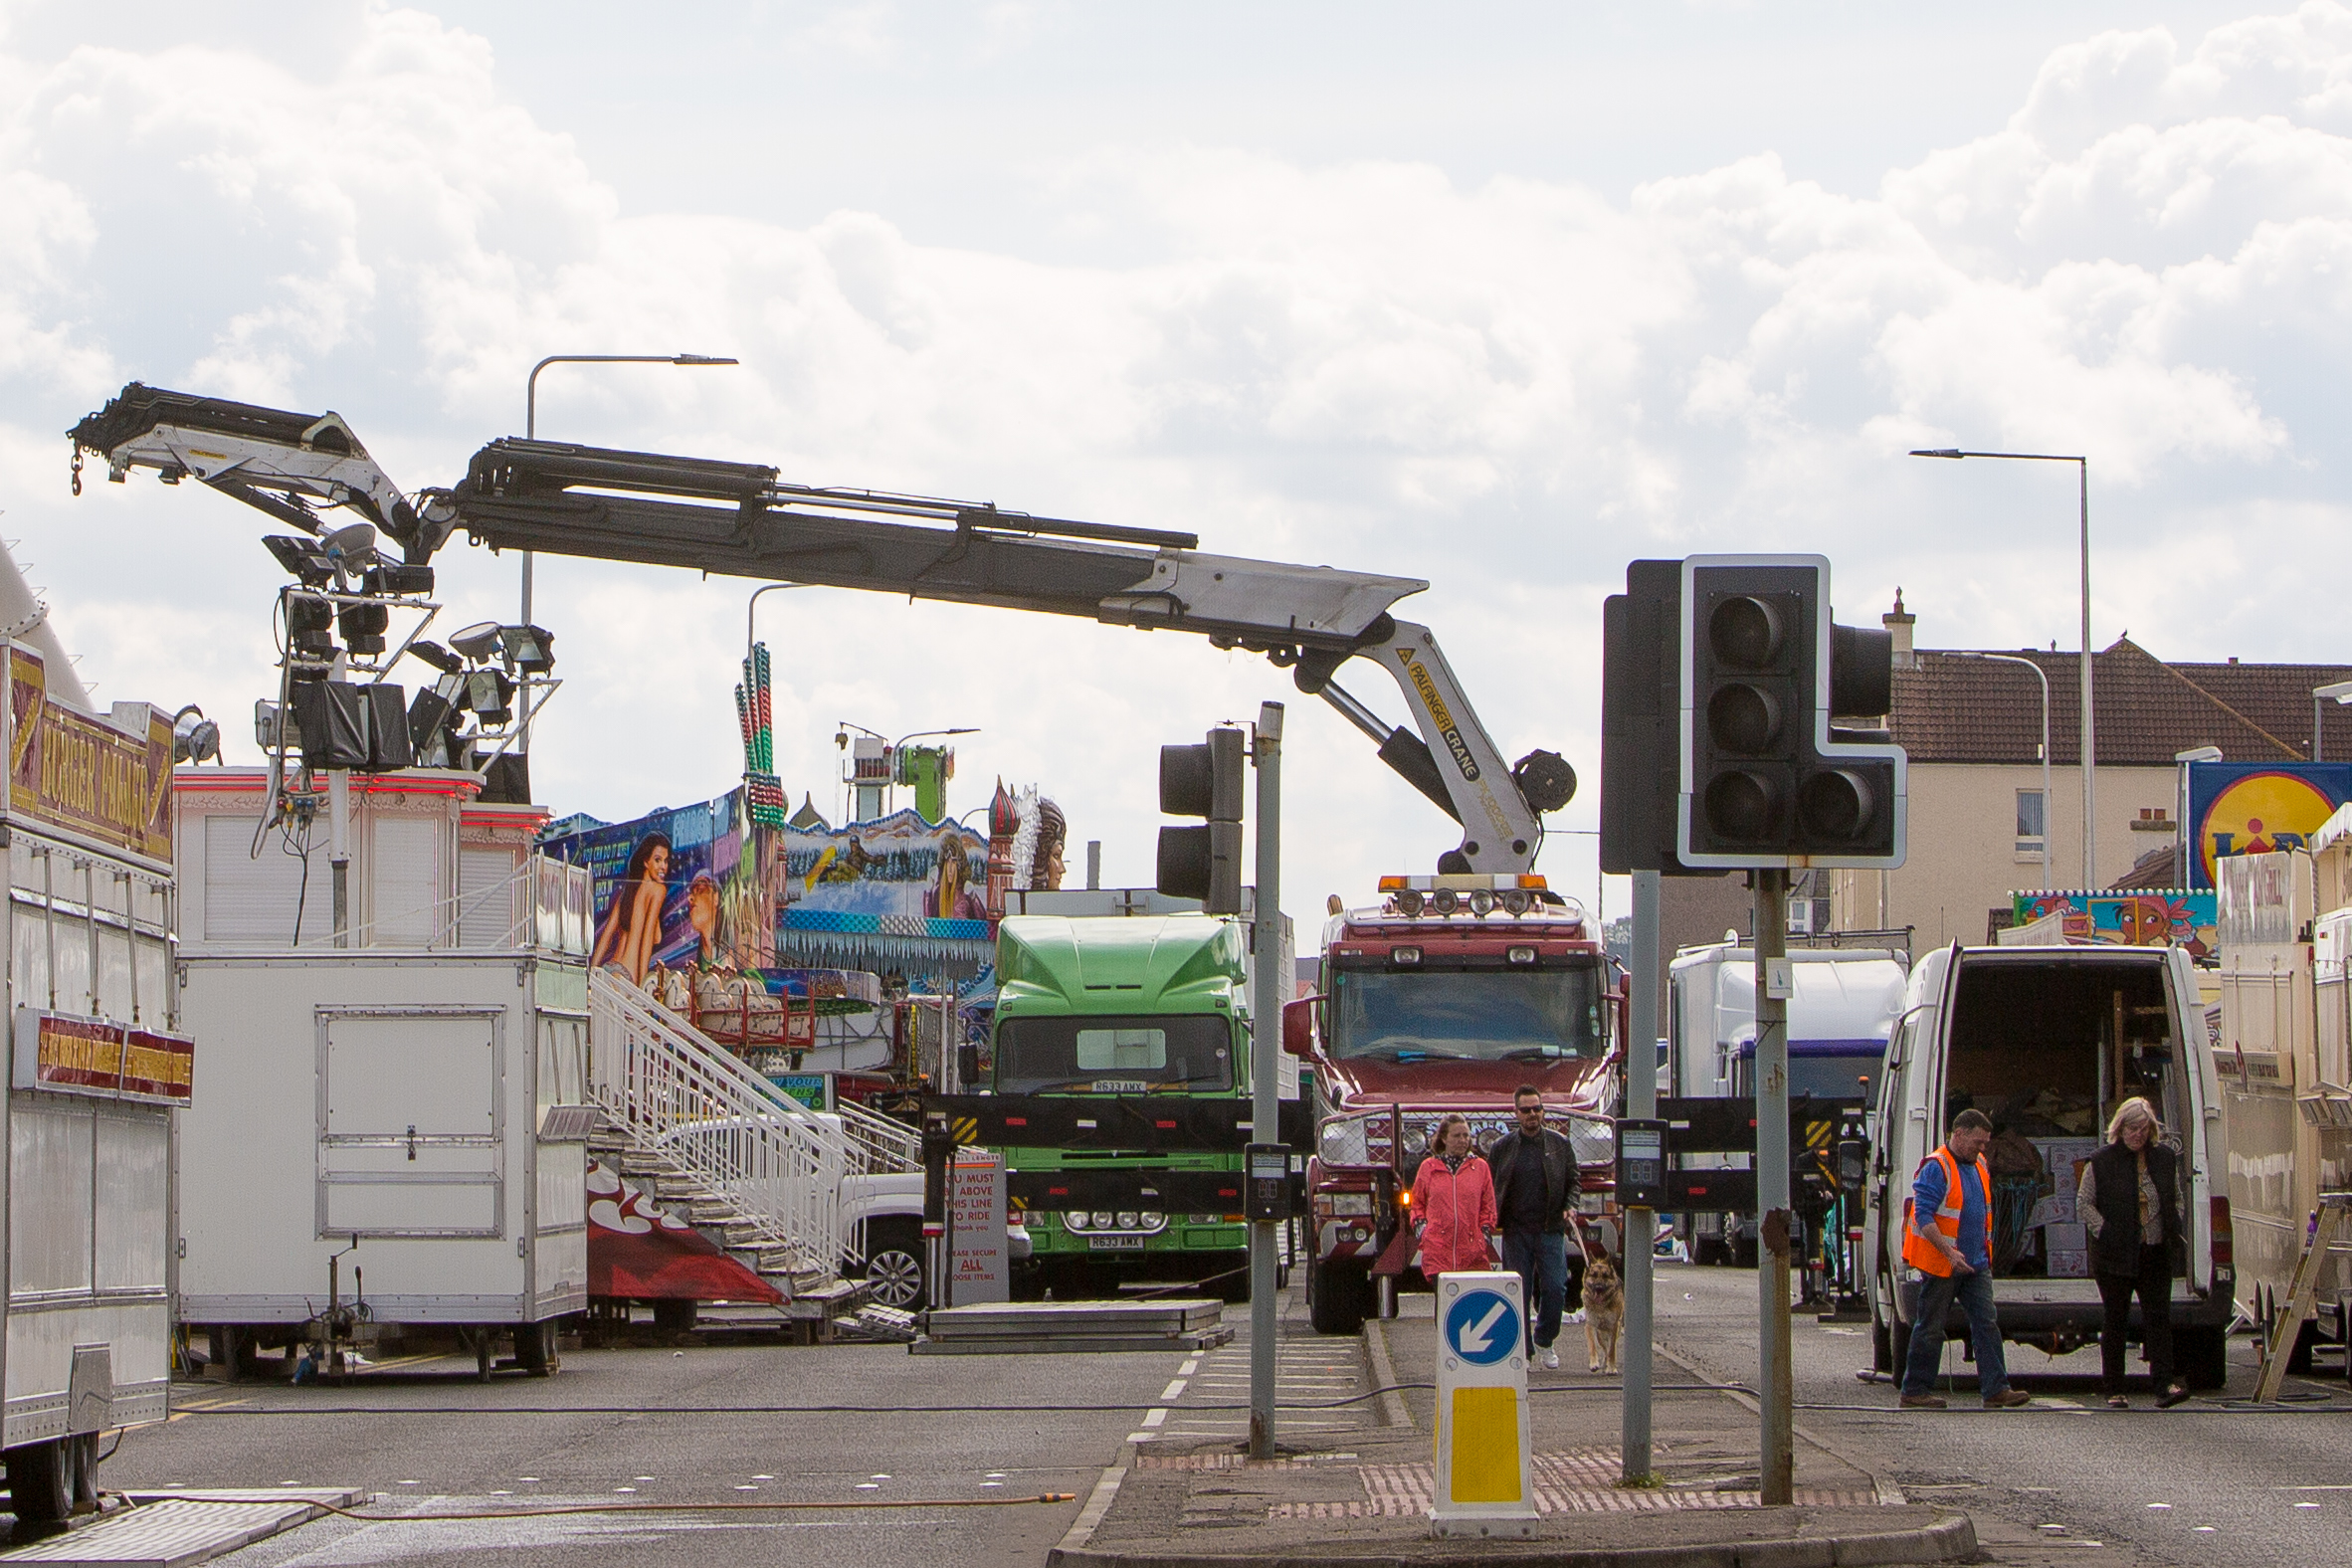 Road closures in place while the fun fair is set up.